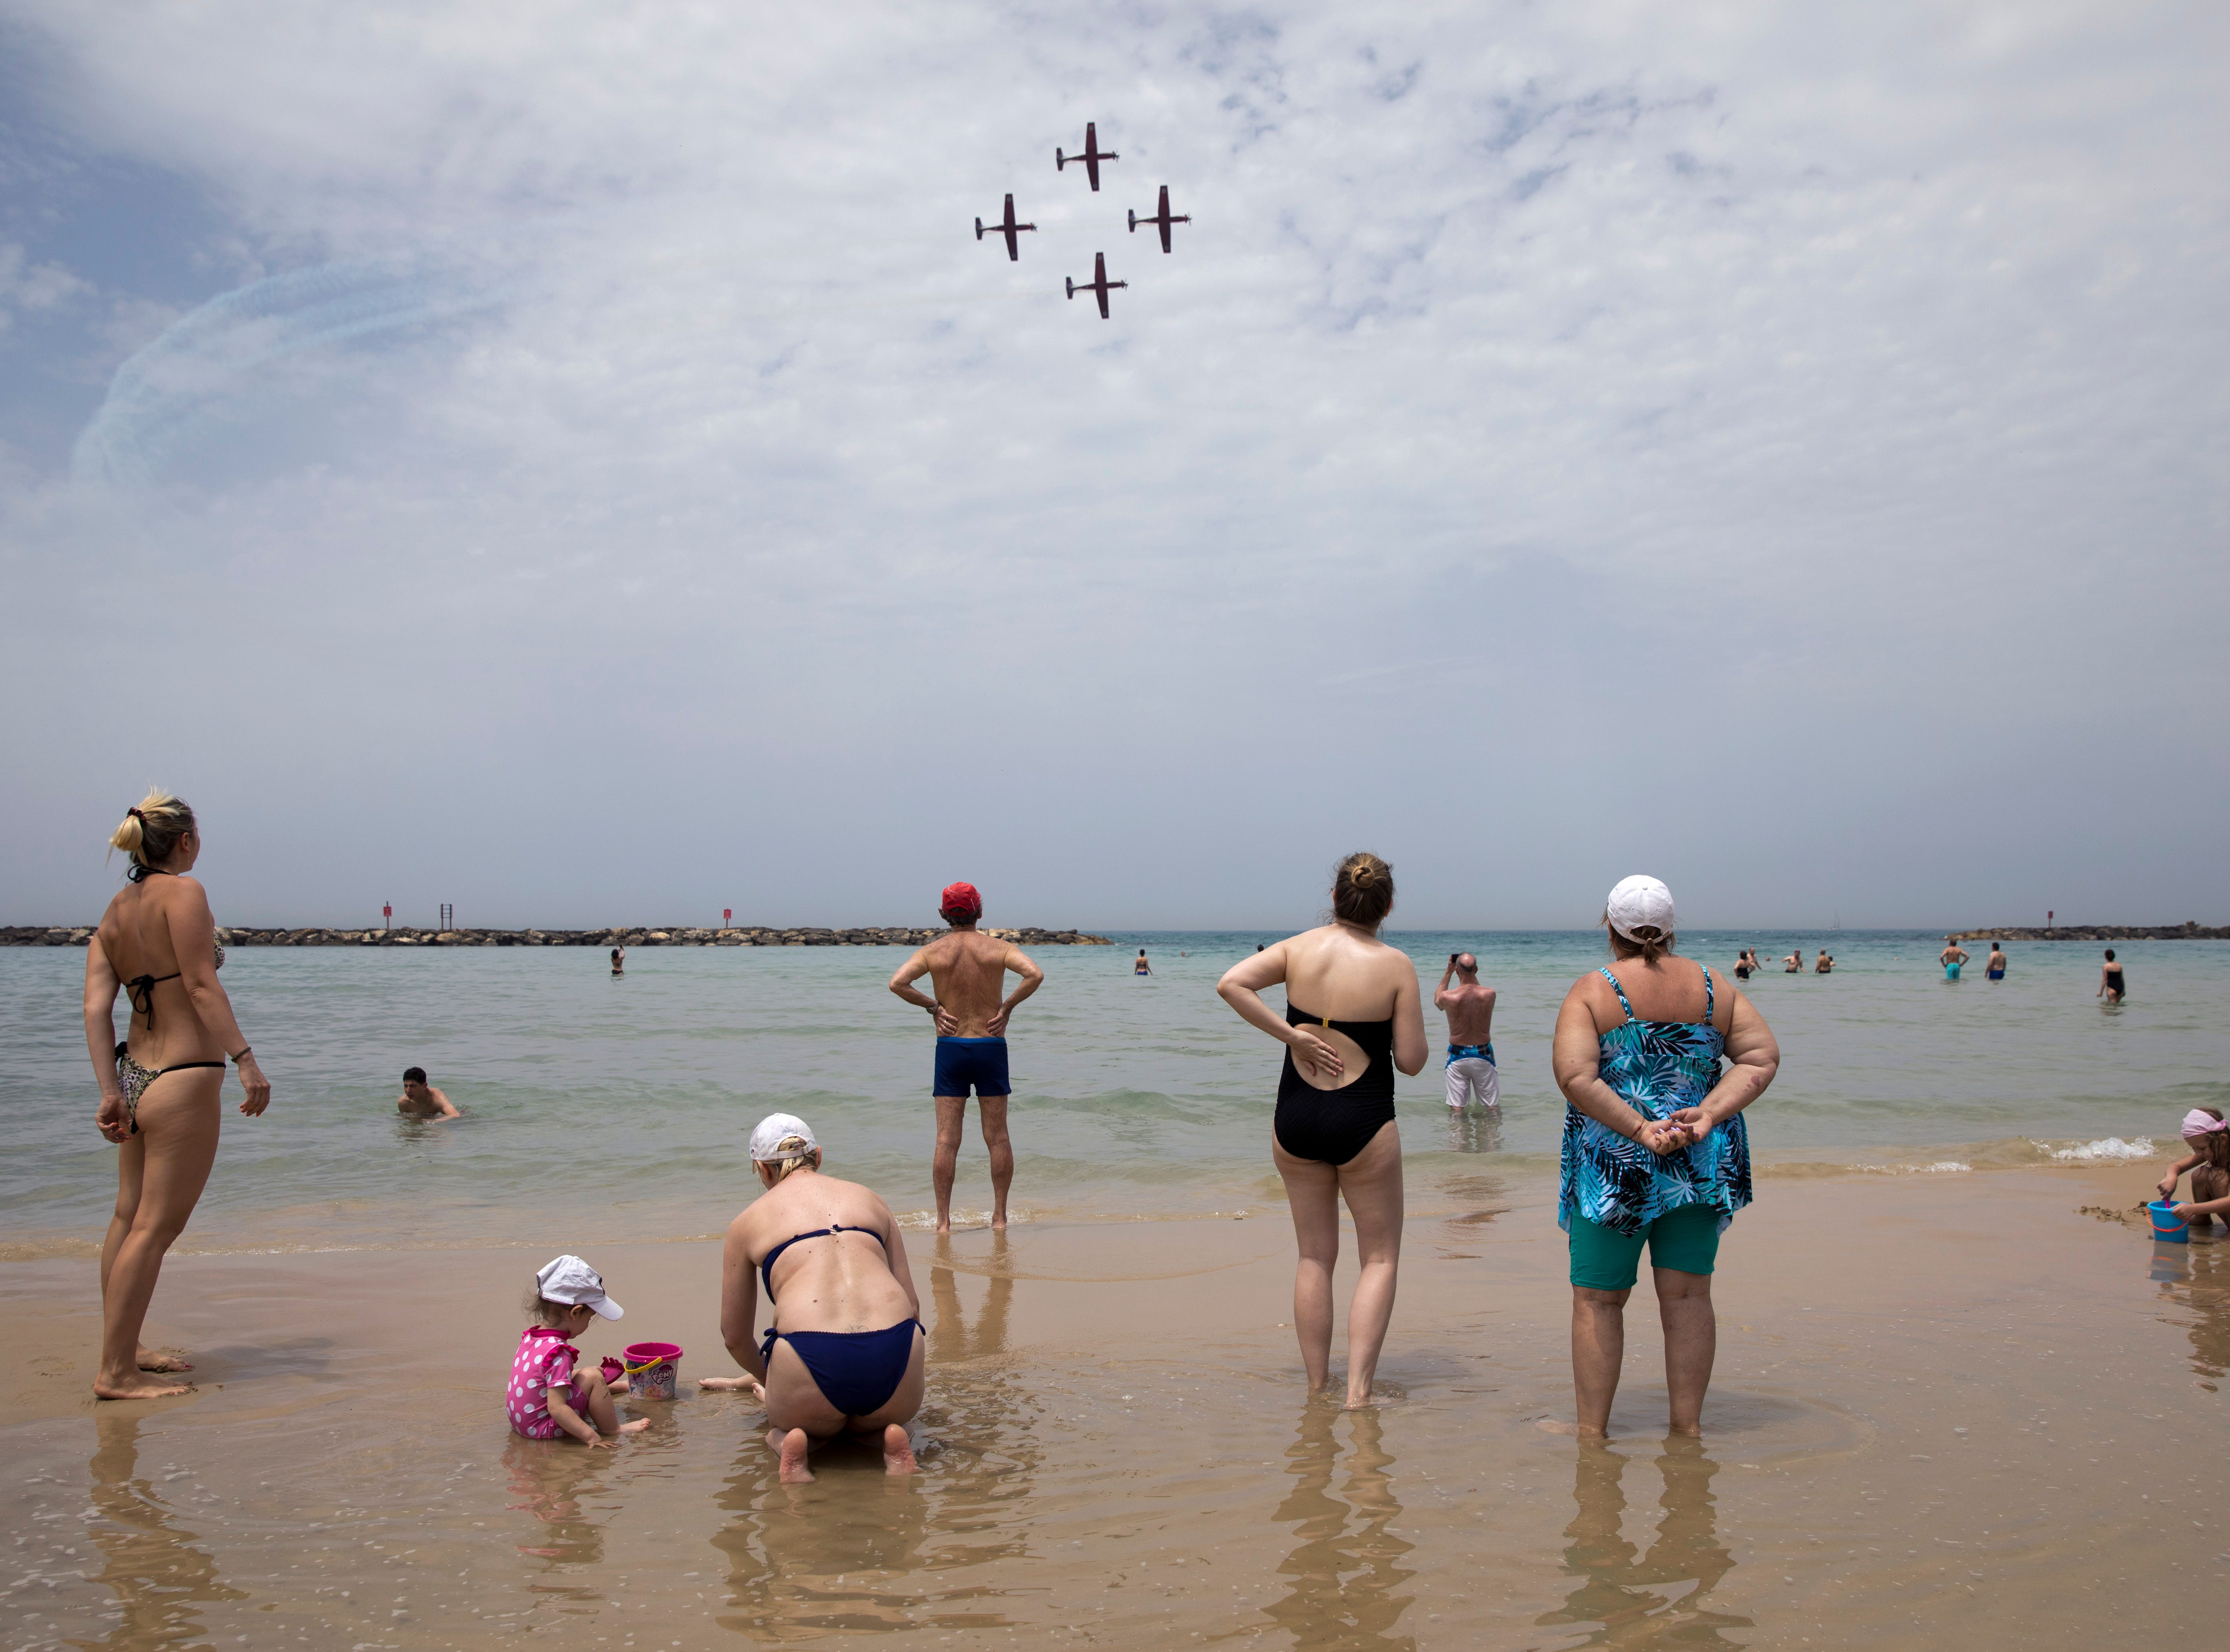 Israeli Air Force aircrafts fly over the coastline during training for upcoming Israel's 71st Independence day celebrations, in Tel Aviv, Israel, Monday, May 6, 2019. Israel will celebrate the 71st anniversary of the founding of the state beginning at sundown Wednesday through to Thursday.